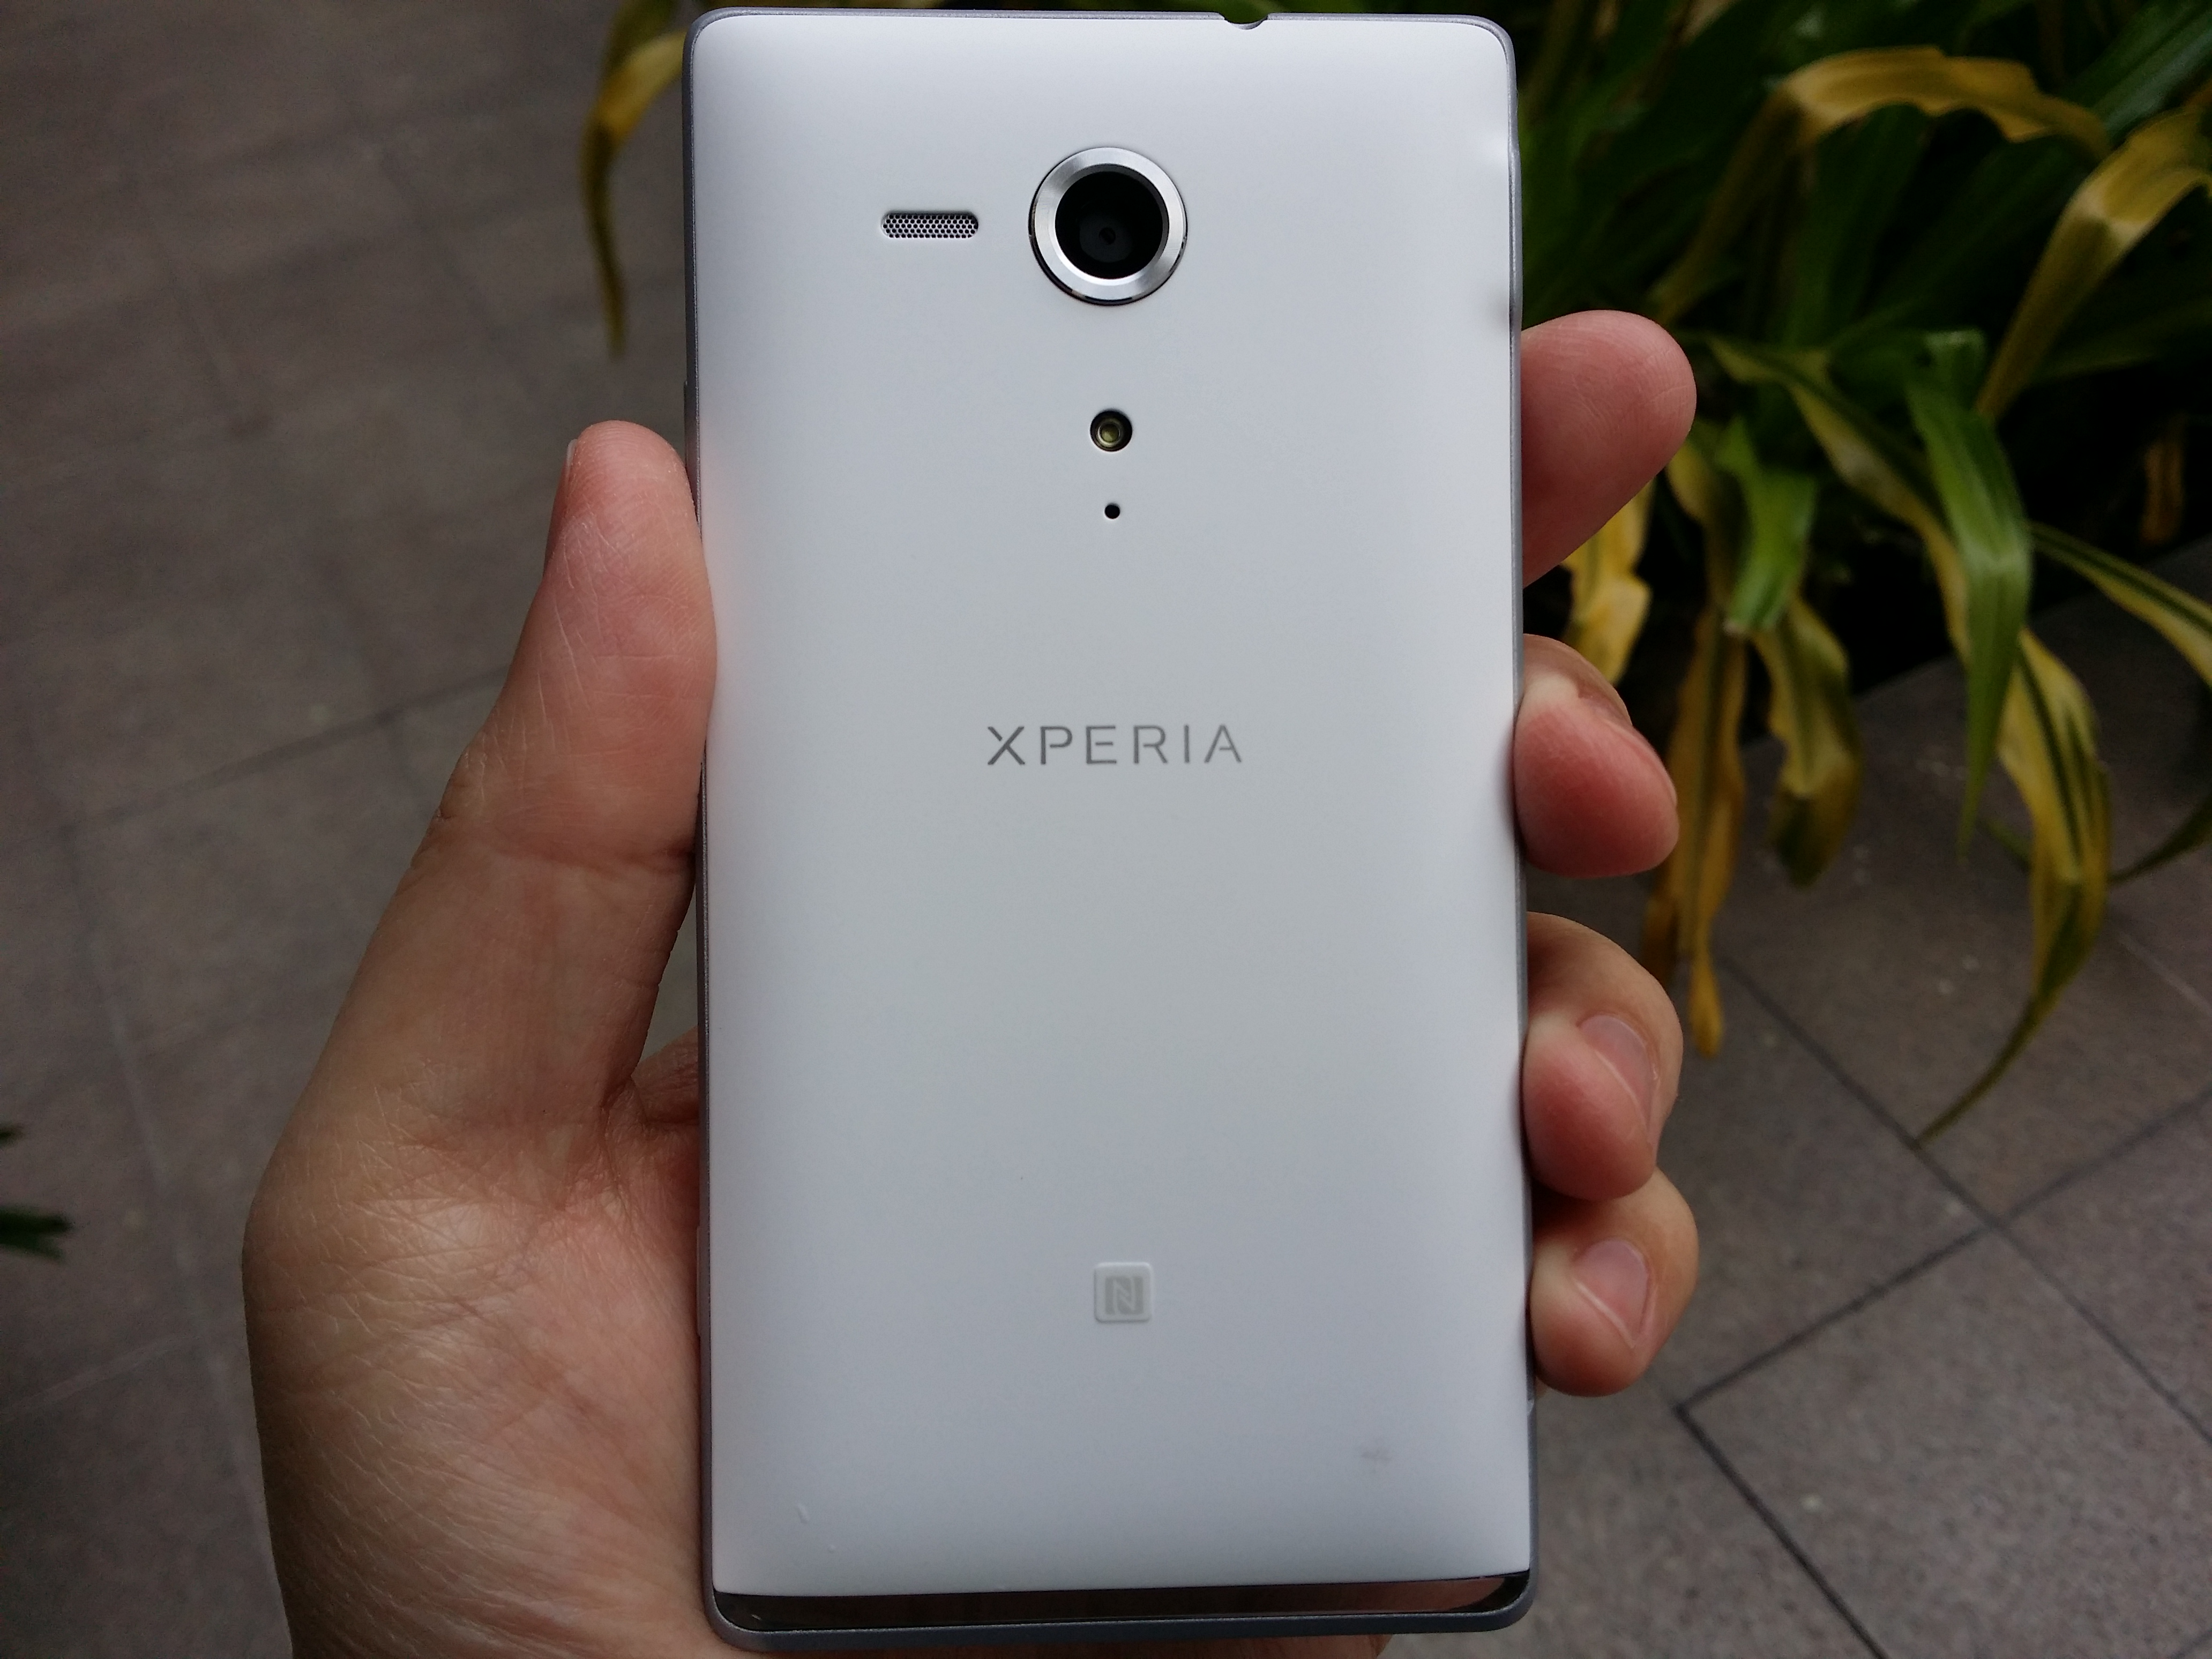 Why is Sony Xperia SP better than Sony Xperia V?